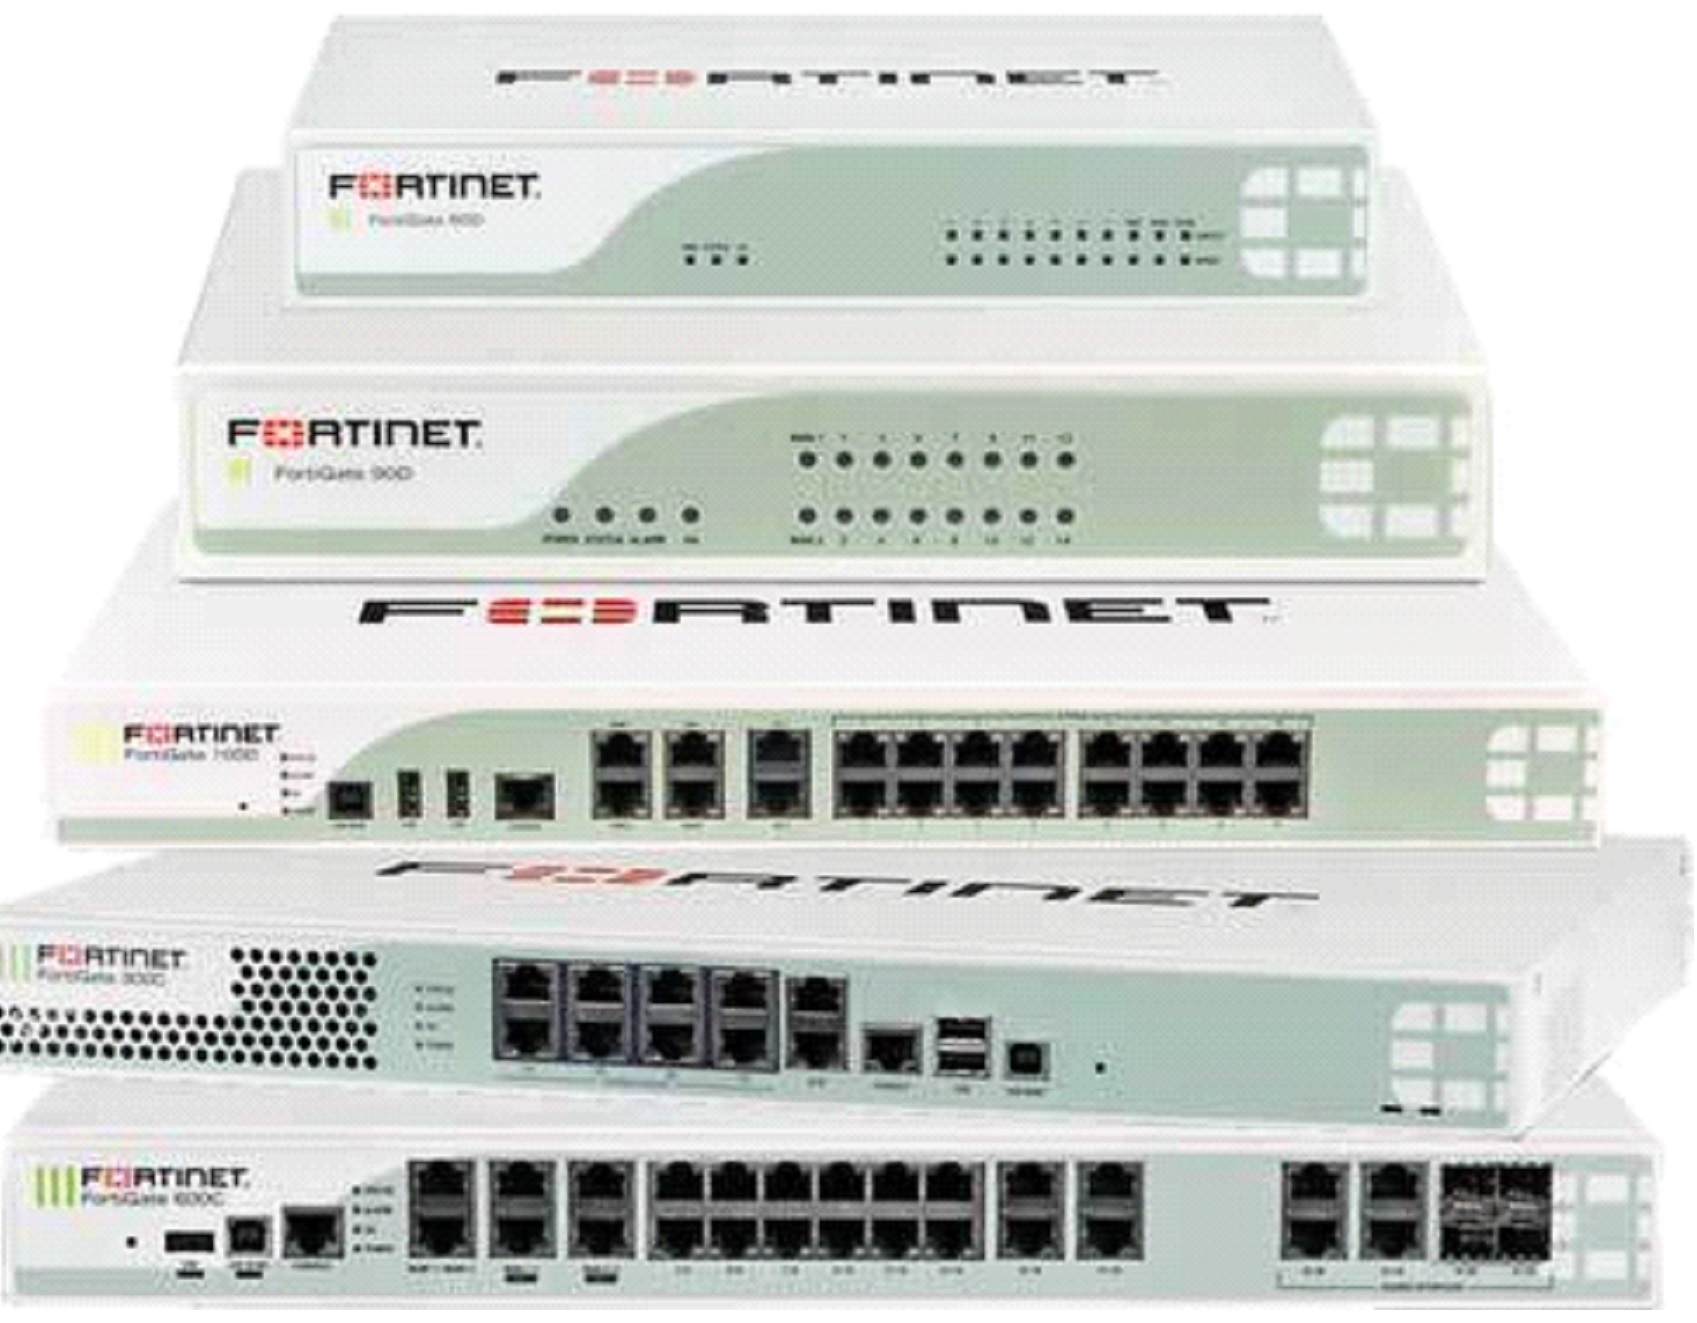 Purchase All Fortinet Licensing and Appliances here